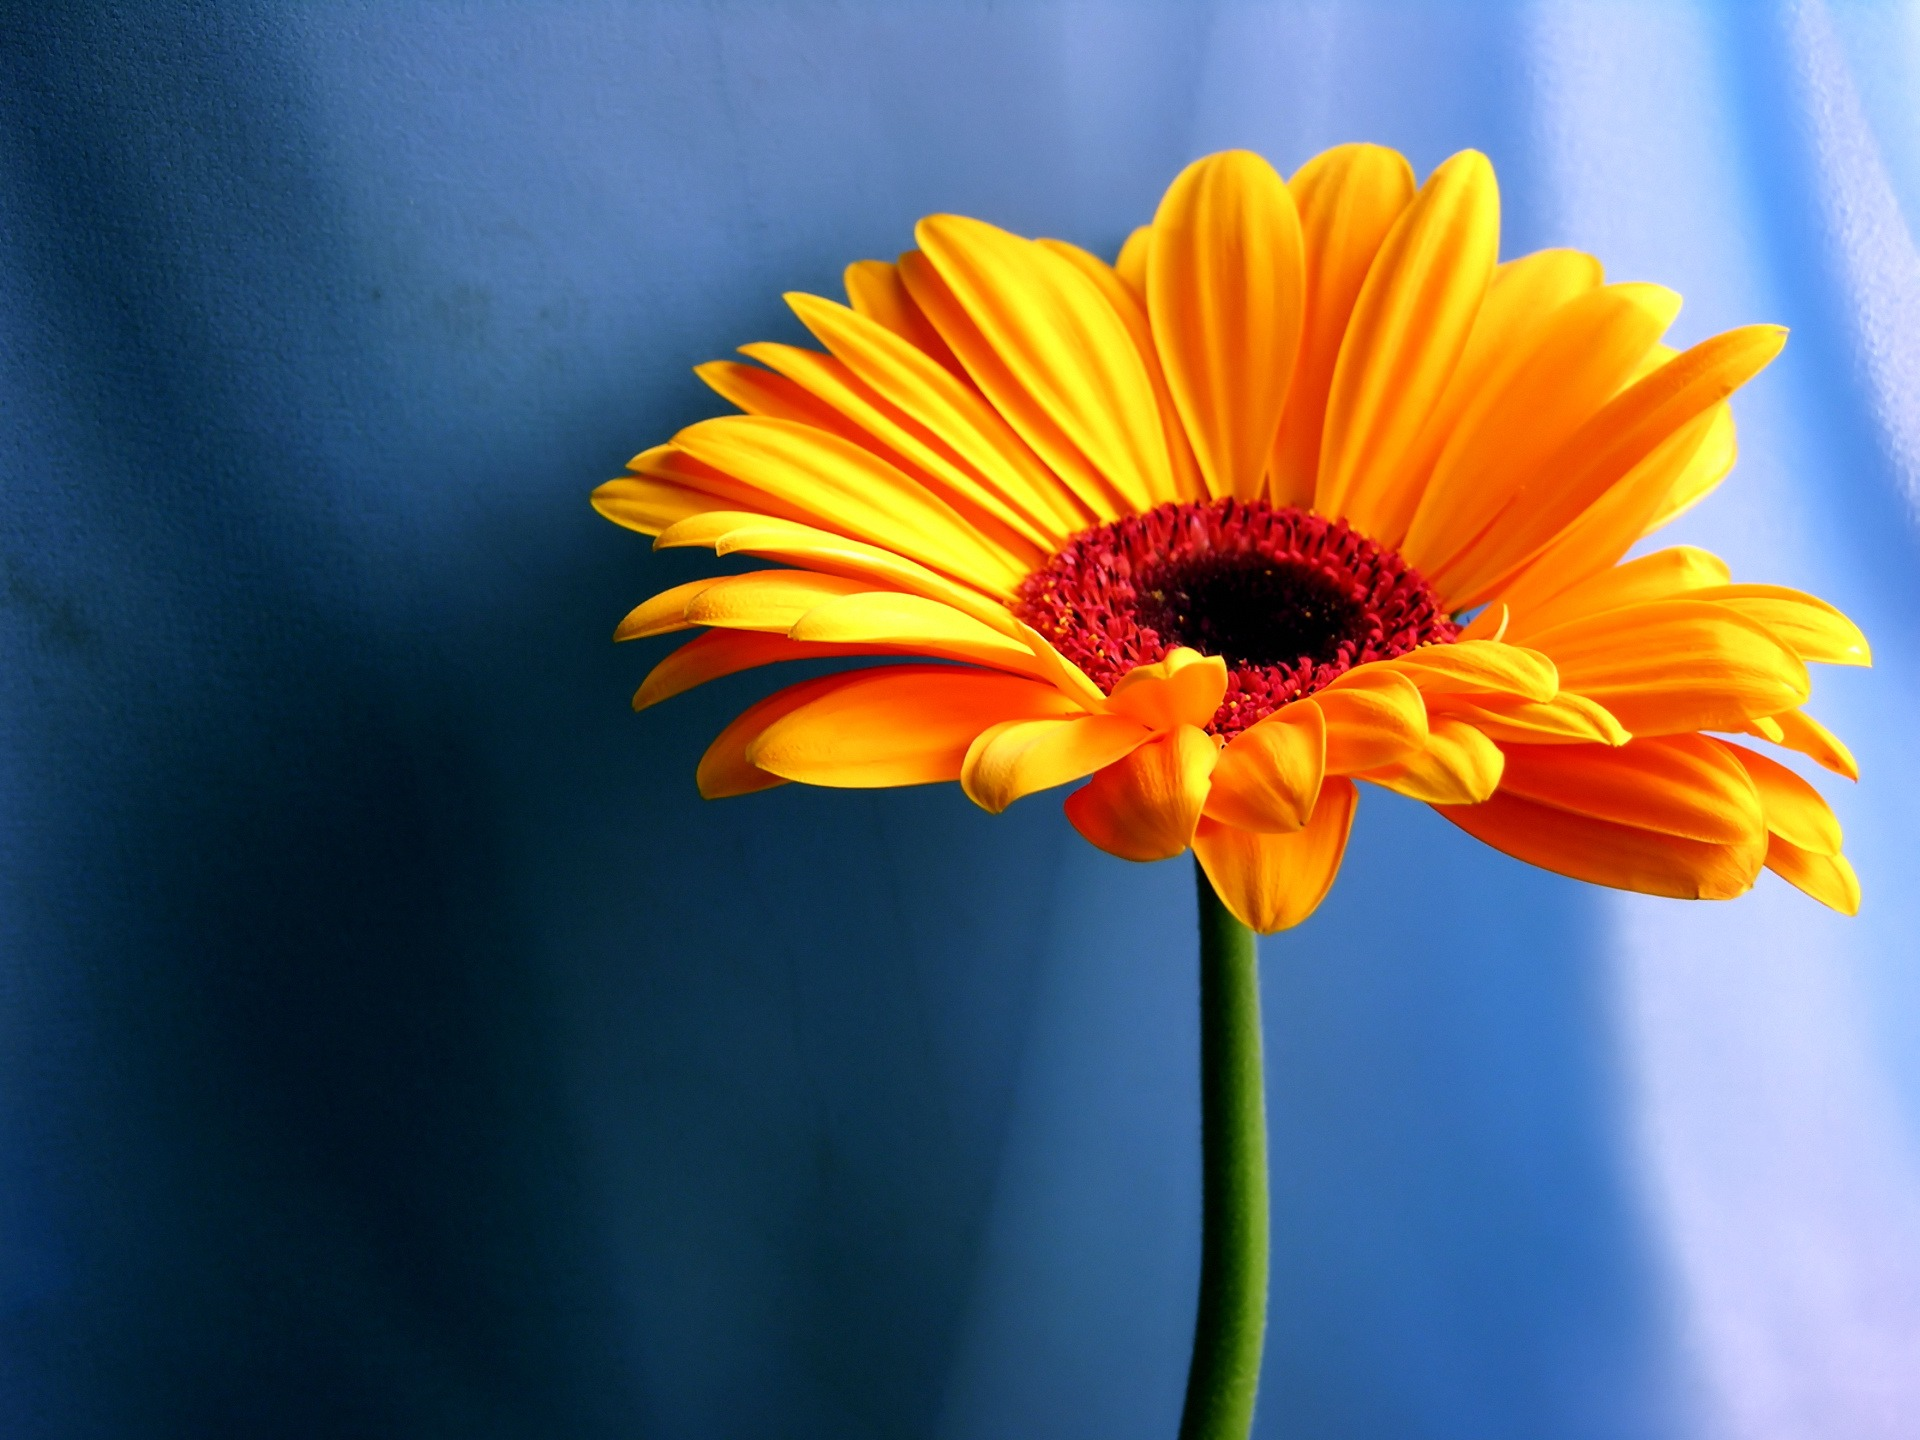 orange flower wallpaper flowers nature wallpaper 1920 1440 1665jpg 1920x1440